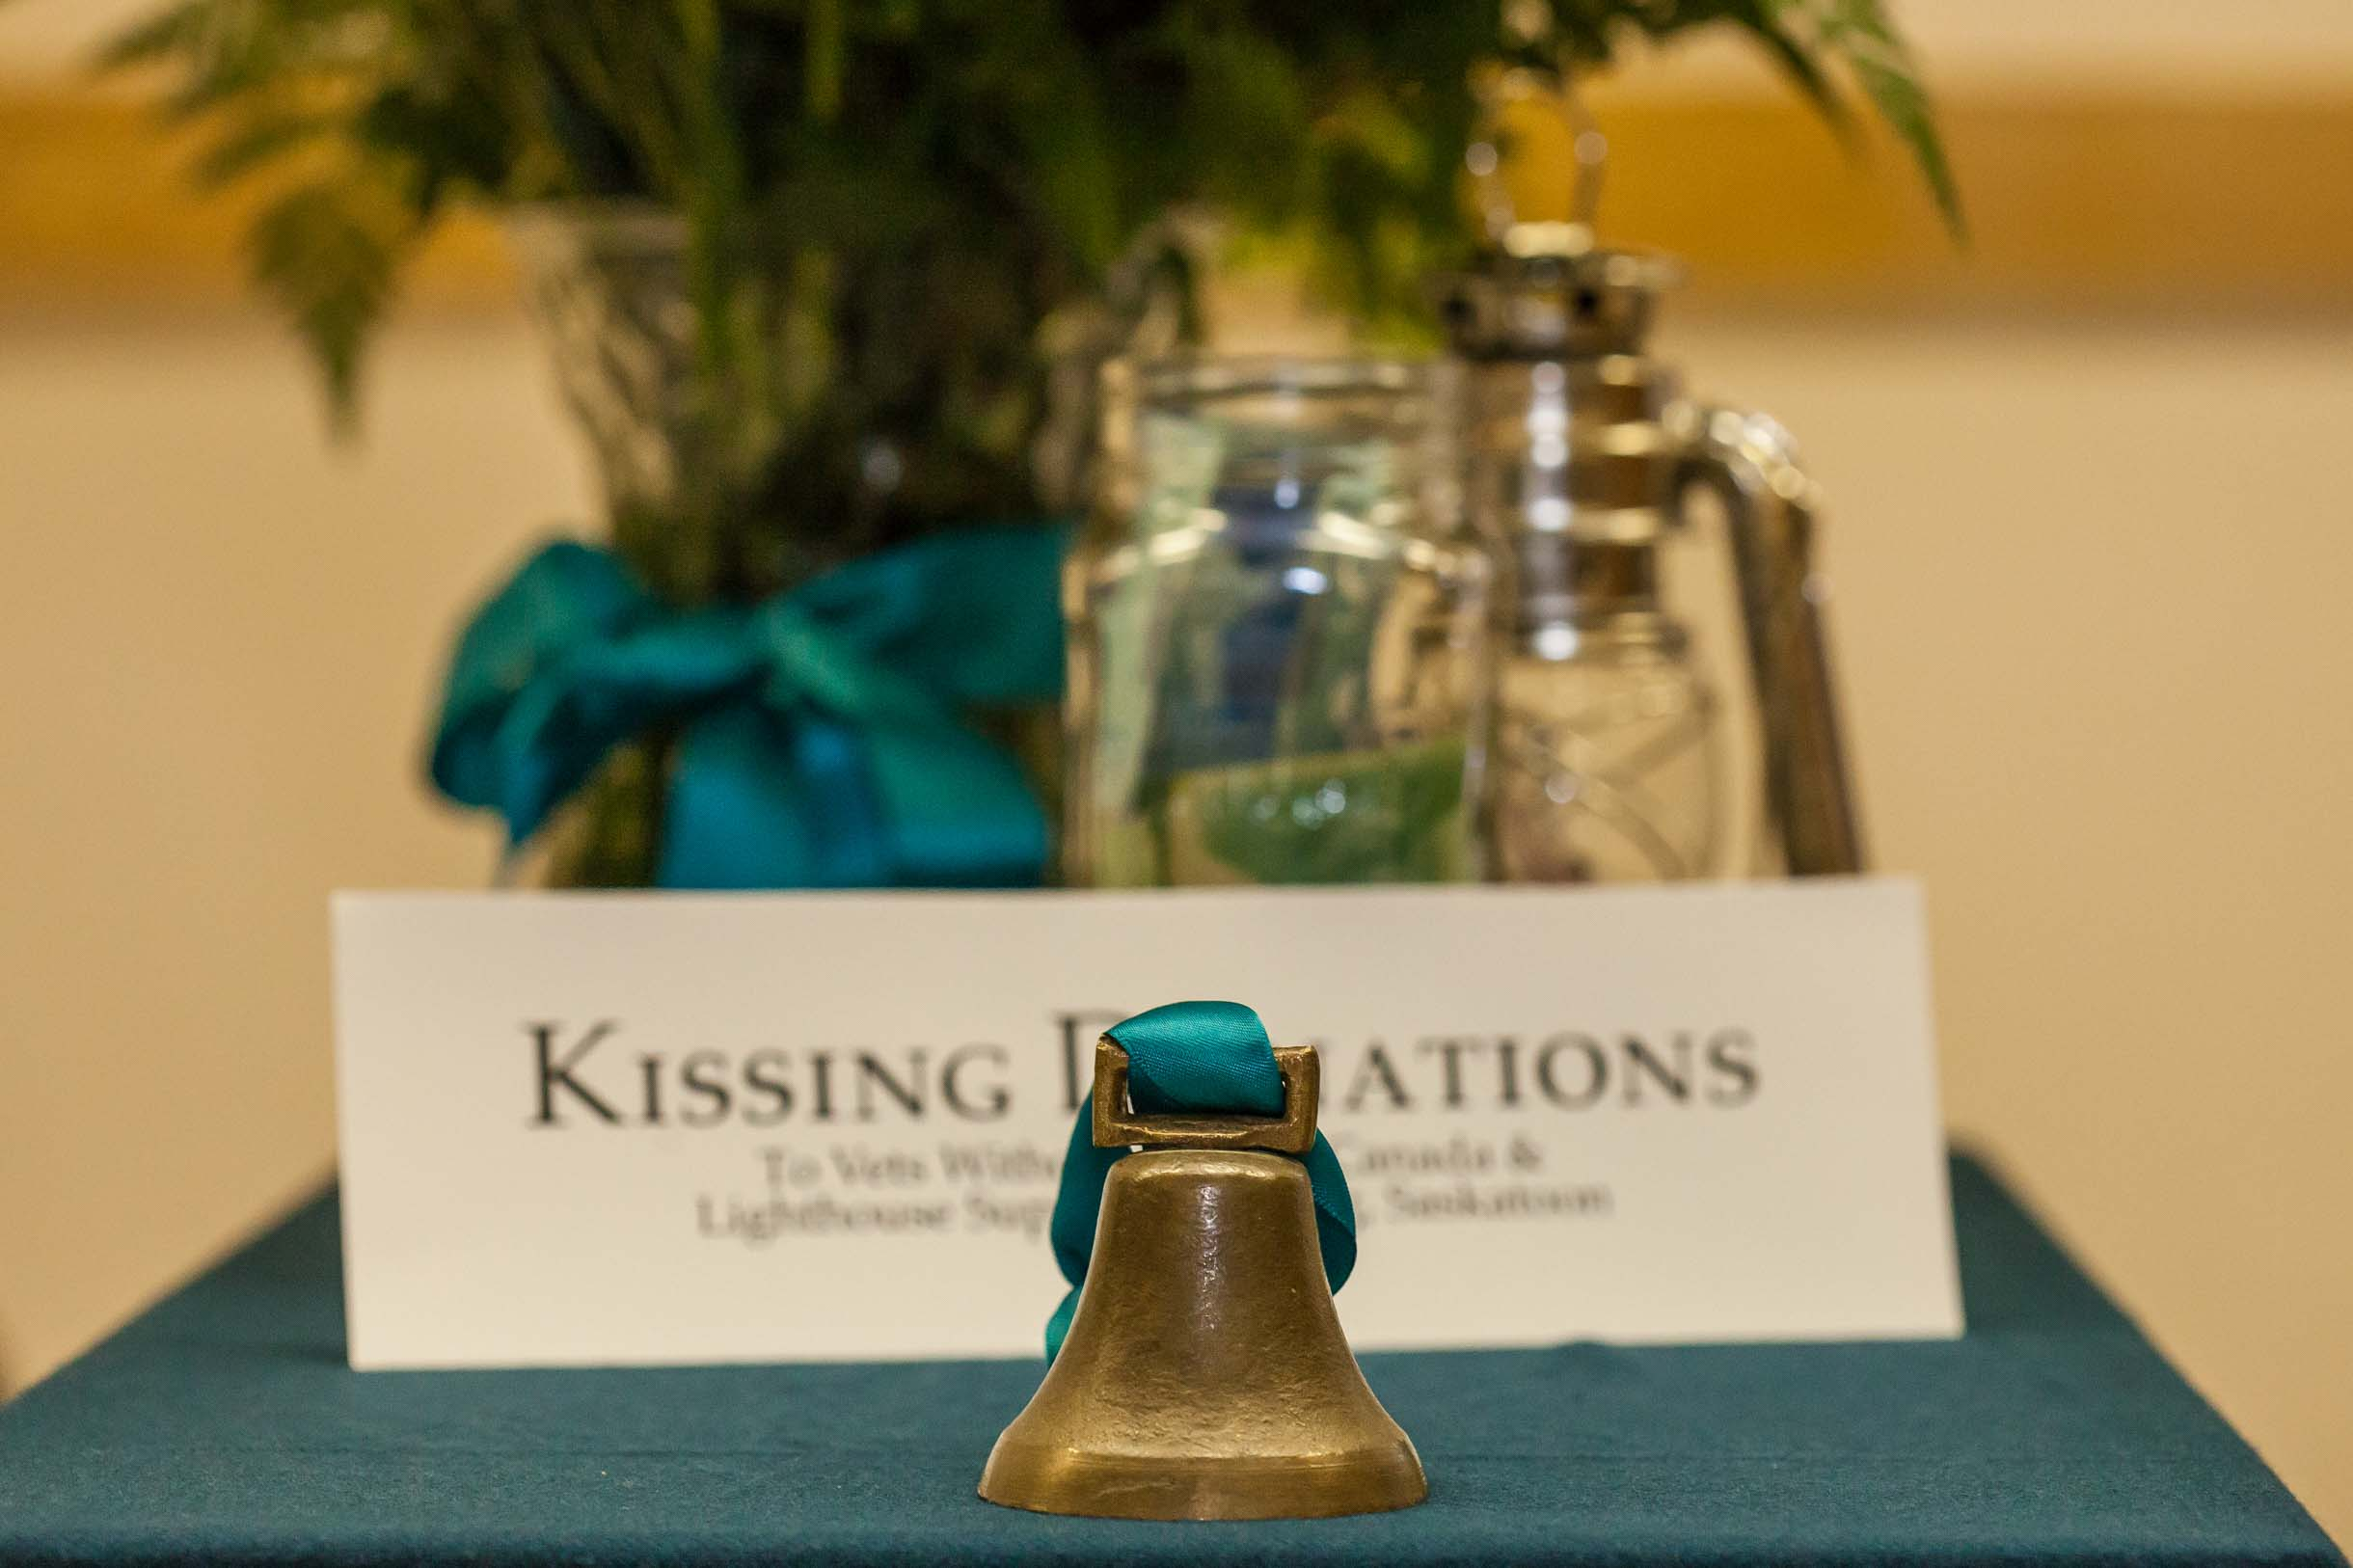 Kissing bell alternative to clicking glasses